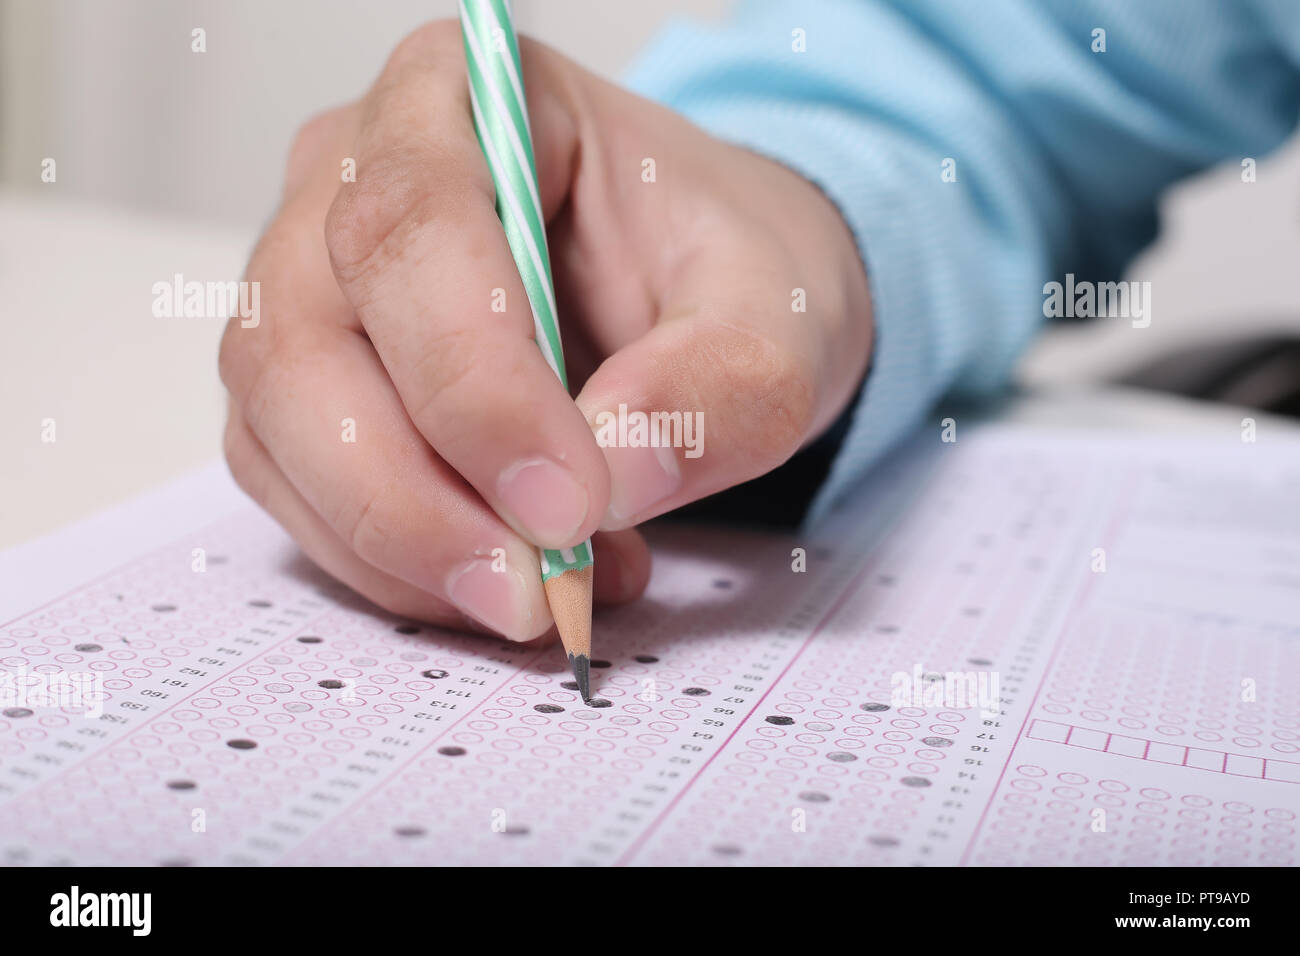 Man is filling OMR sheet with pencil. - Stock Image